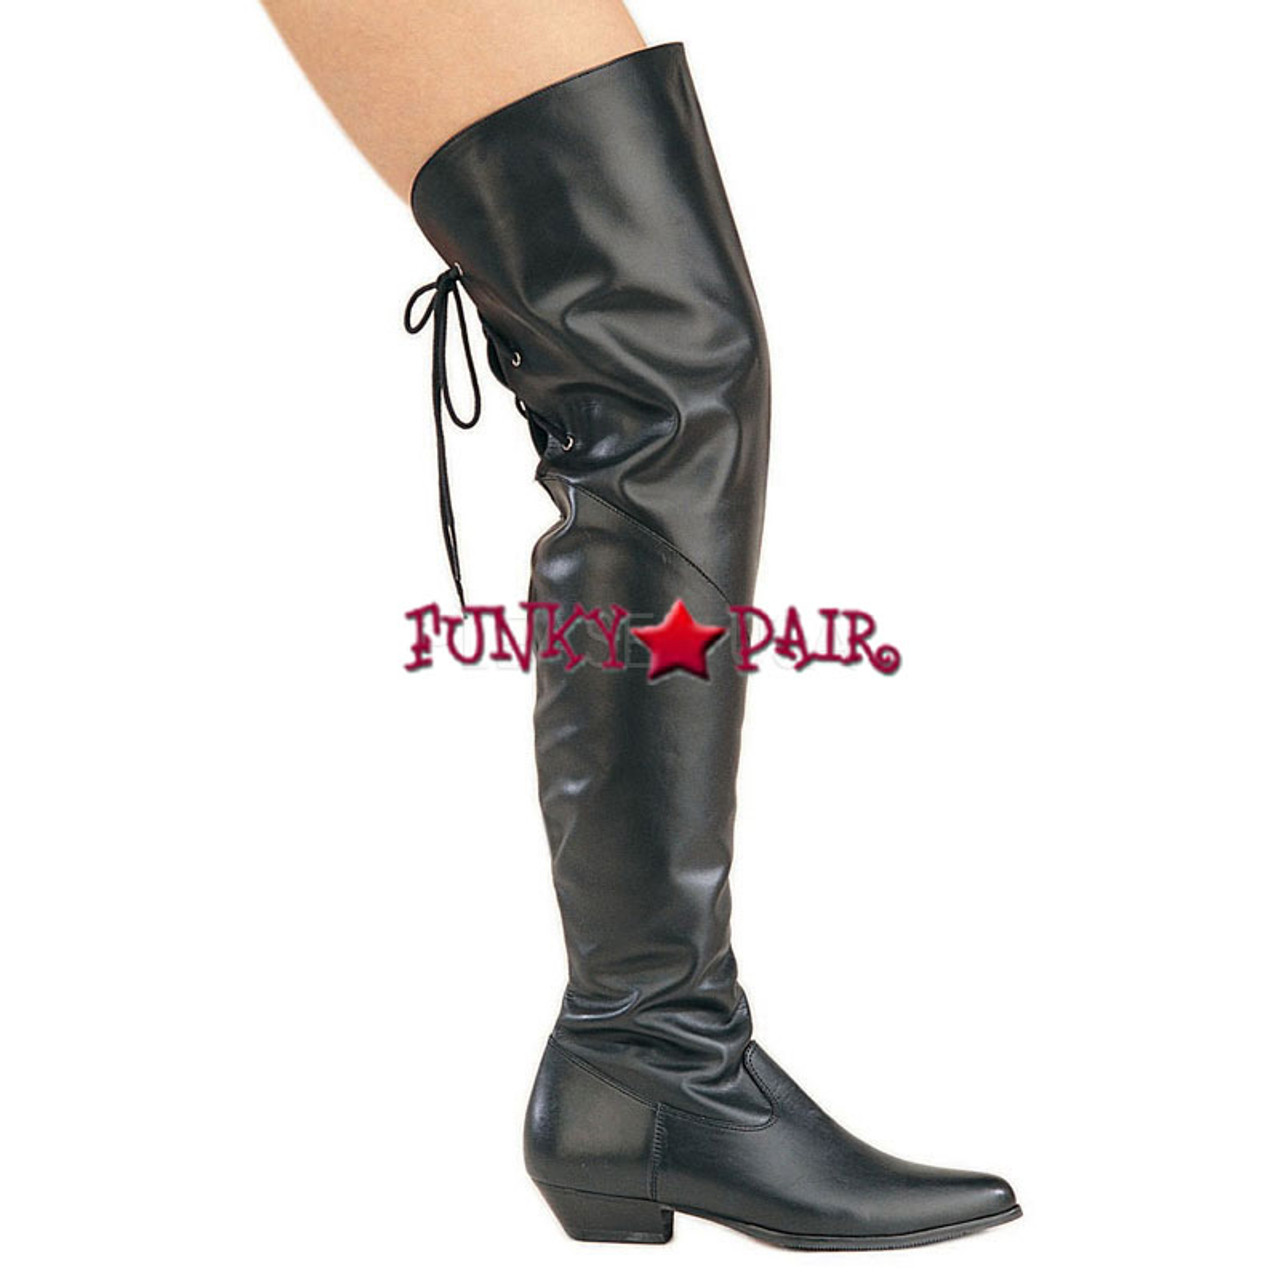 27a0c5734 Rodeo-8822, 1.5 Inch Thigh-high boots sz 6-16 Black Faux